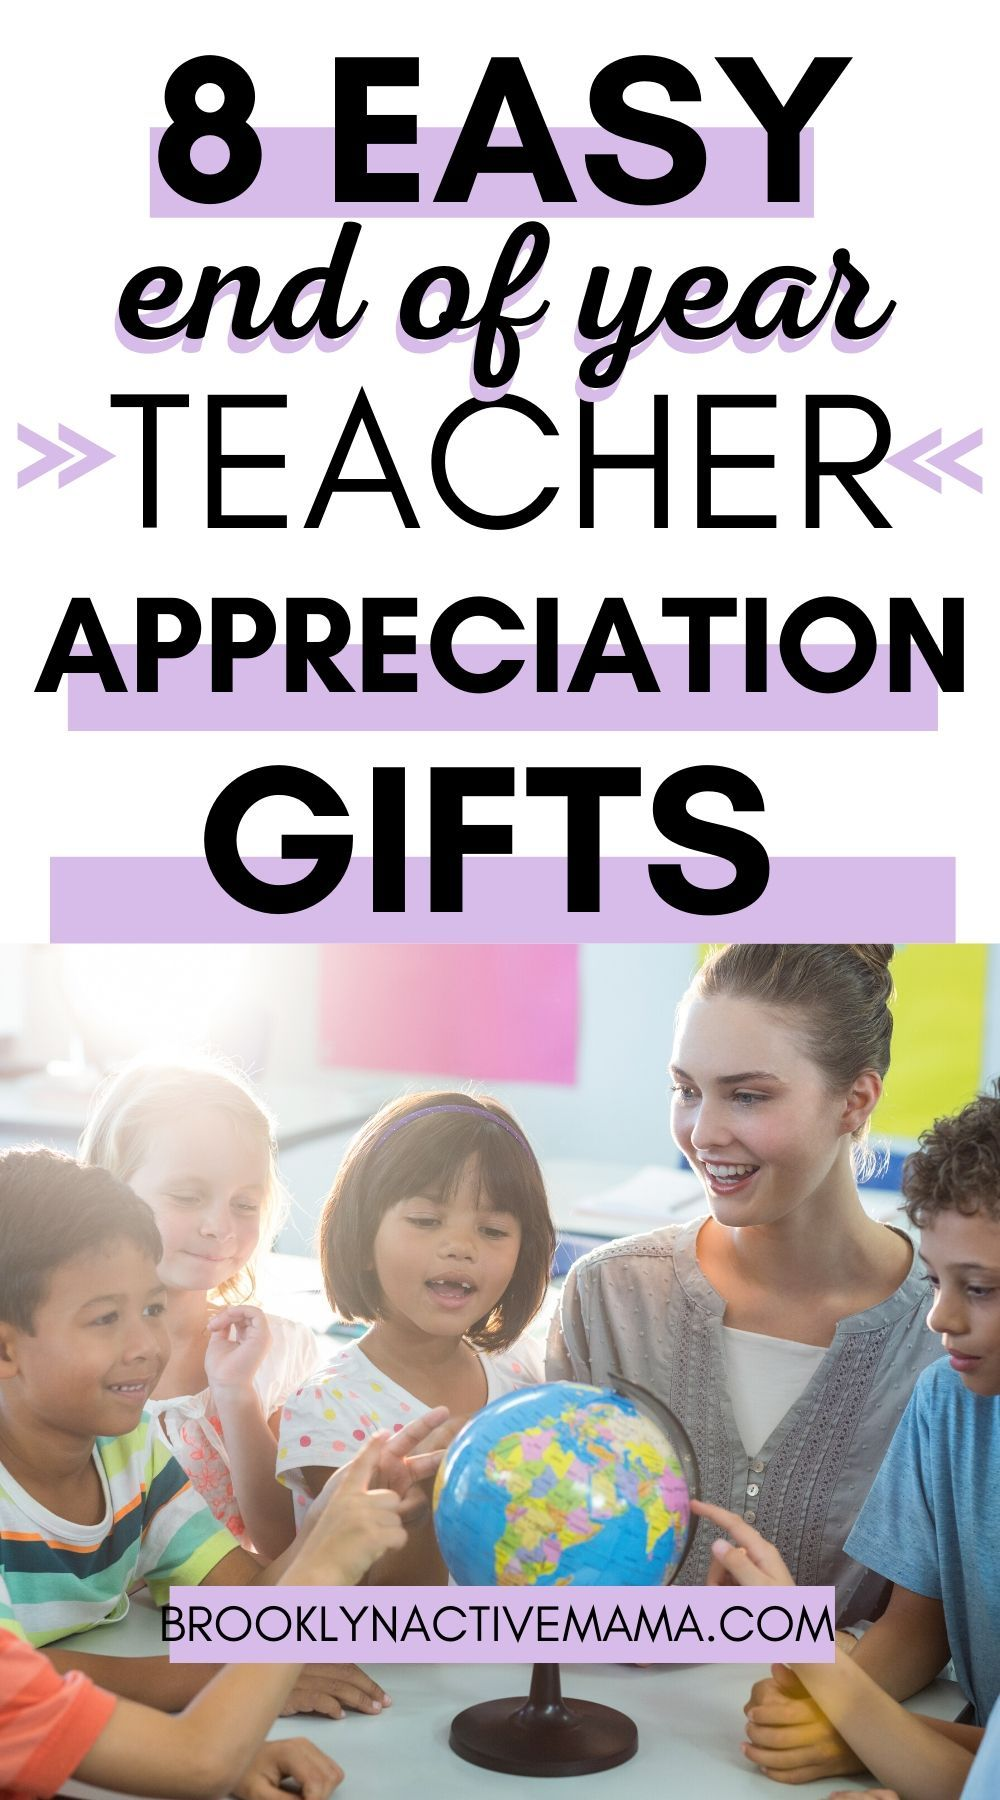 8 Easy and Thoughtful End Of Year Teacher Appreciation Gifts